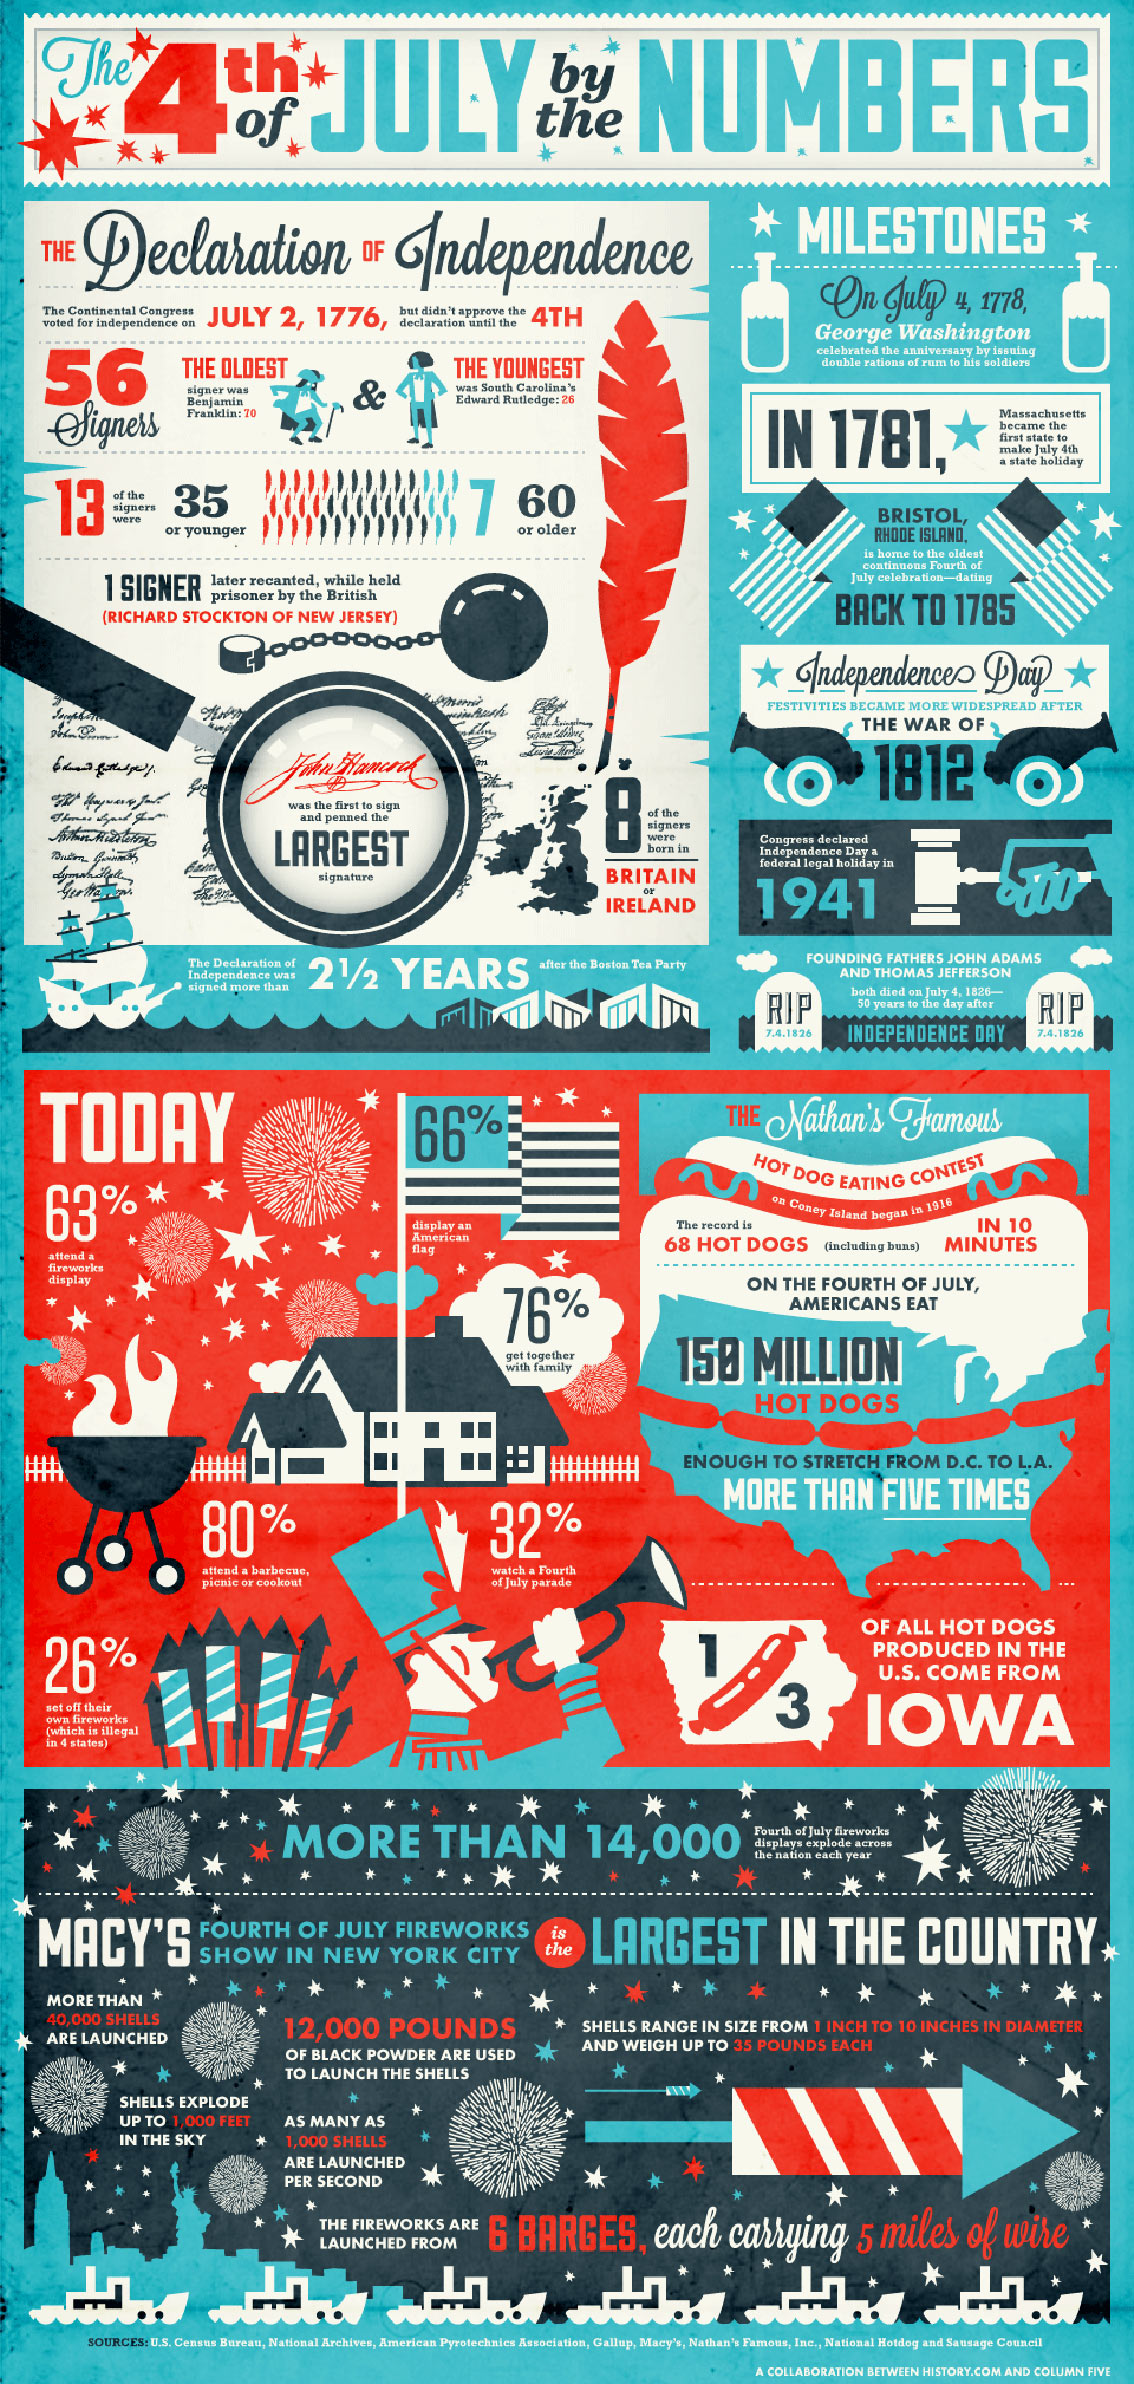 The 4th of July by the Numbers Infographic